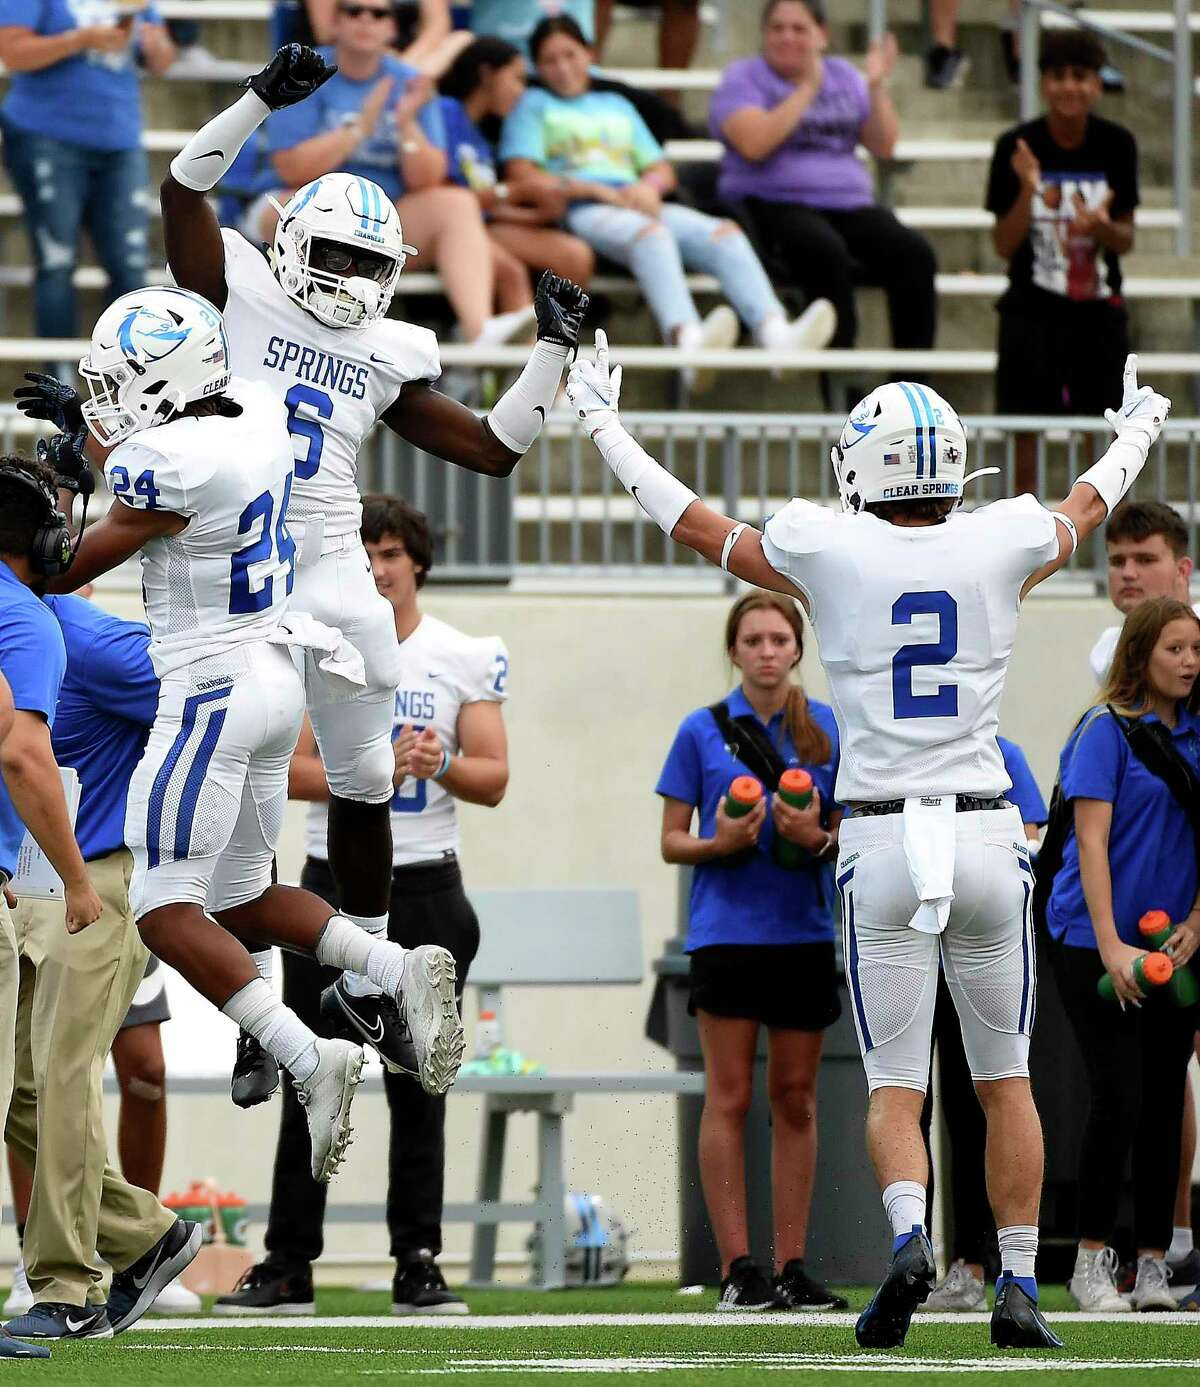 Clear Springs, which fell last week to Katy, saw Katy Tompkins rally in the final minute to claim a 53-43 win Friday night at Challenger Columbia Stadium.